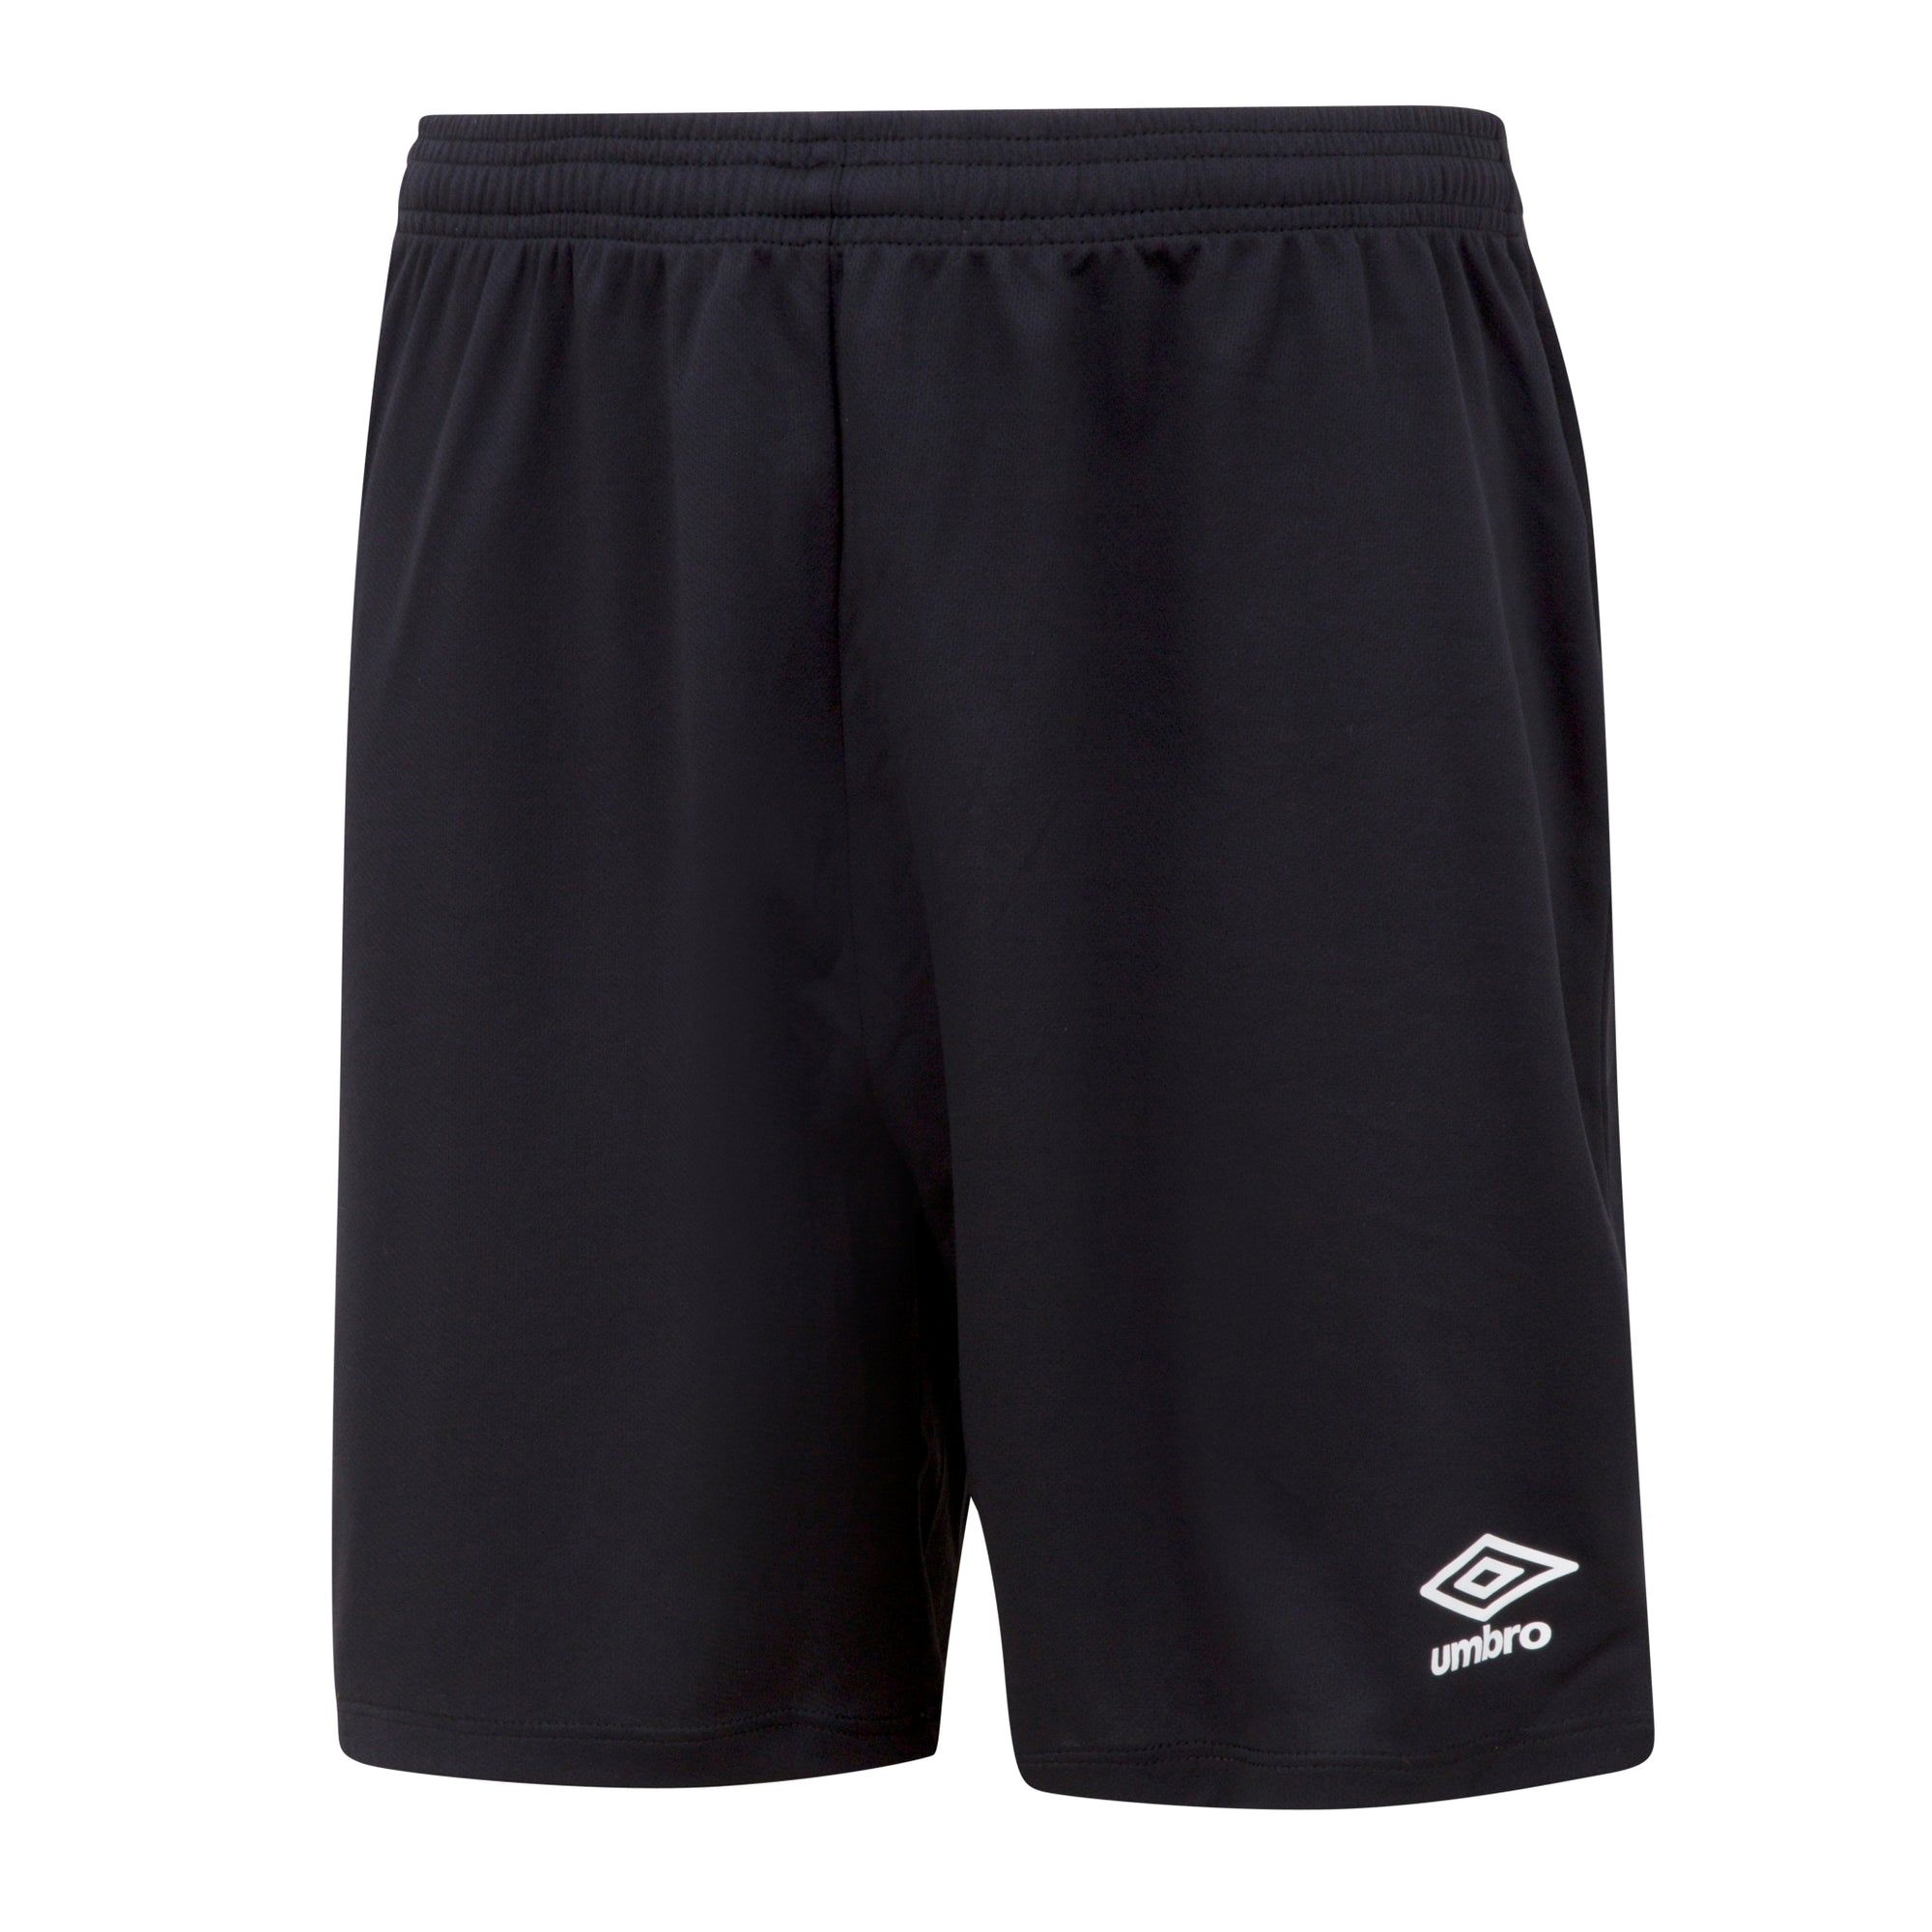 Umbro Club Short II in black